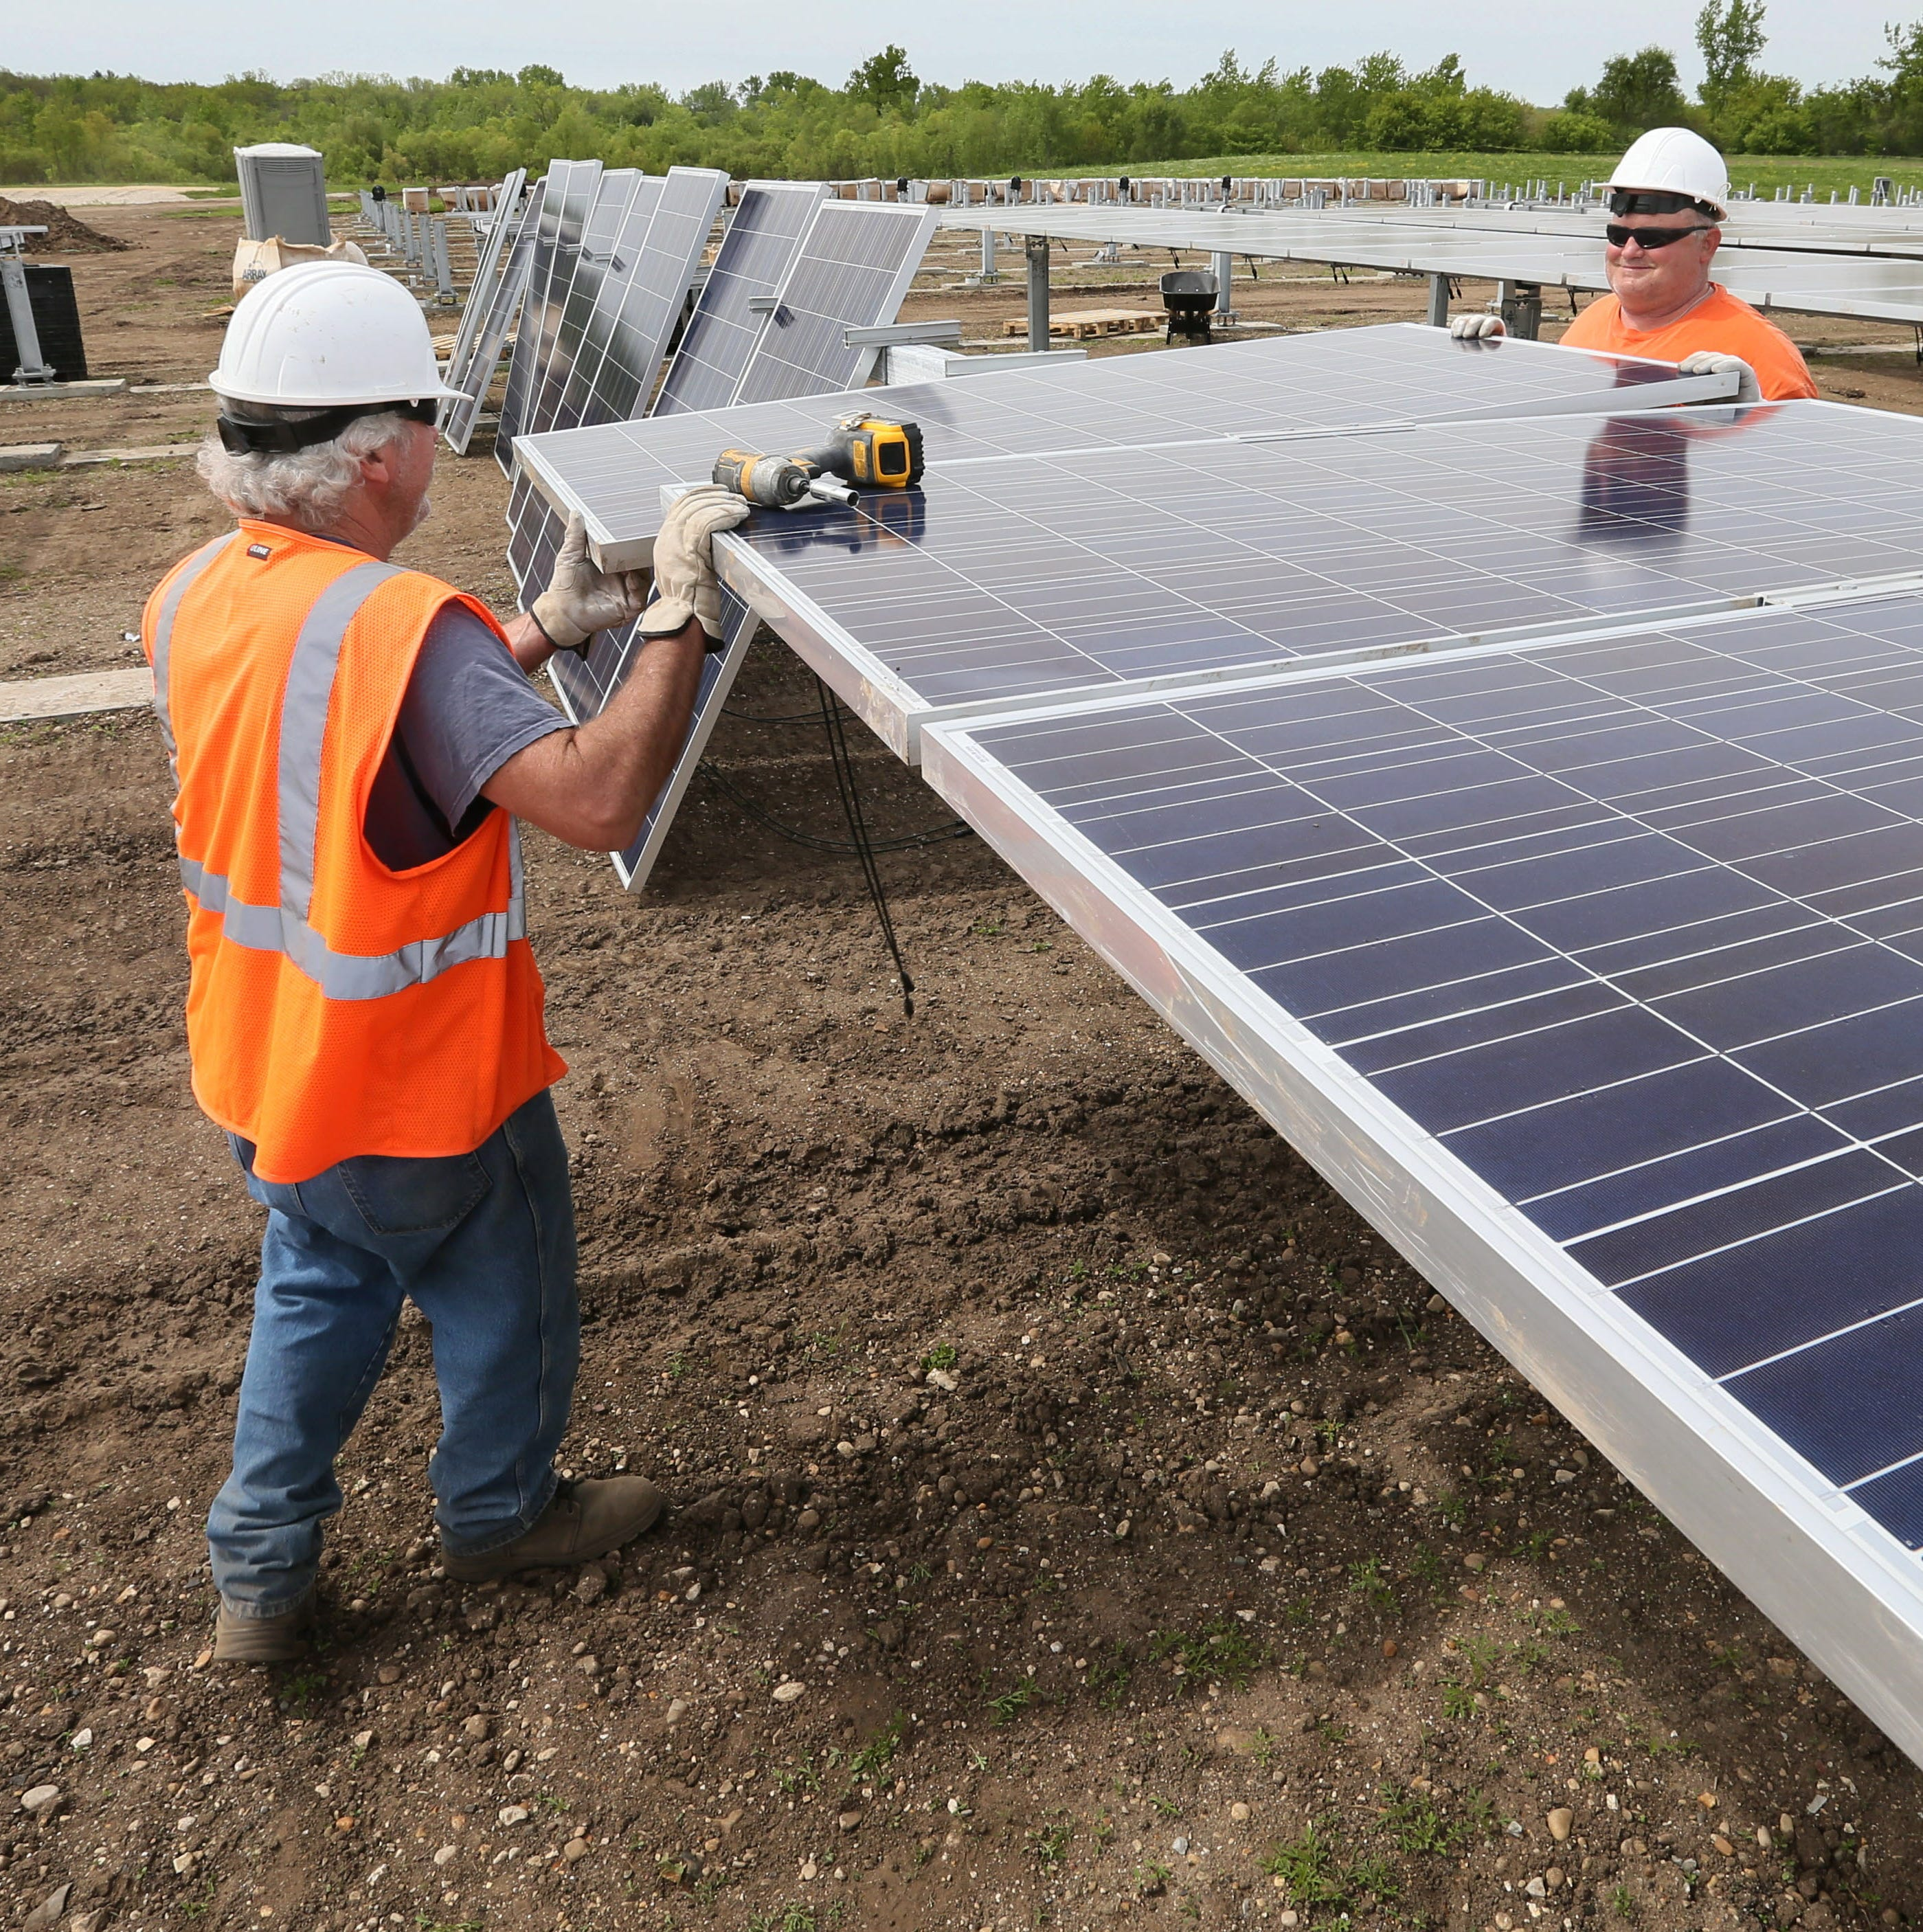 'Solar for Good:' Wisconsin nonprofits and churches land solar energy grants